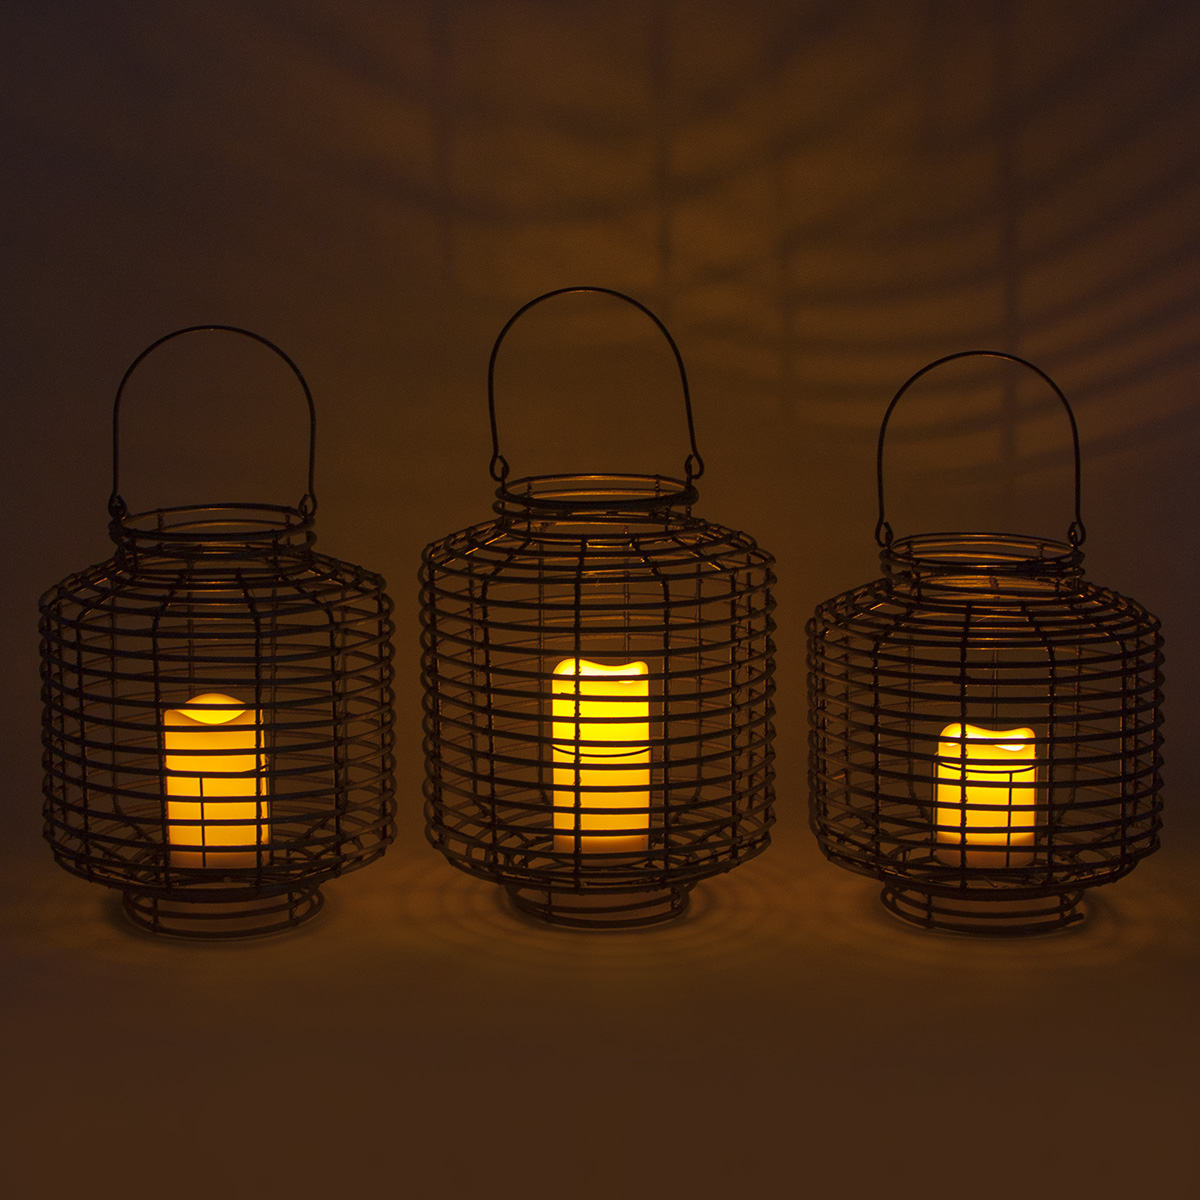 Rattan Outdoor Solar Lantern Patio Decor with LED Candle Featured Image